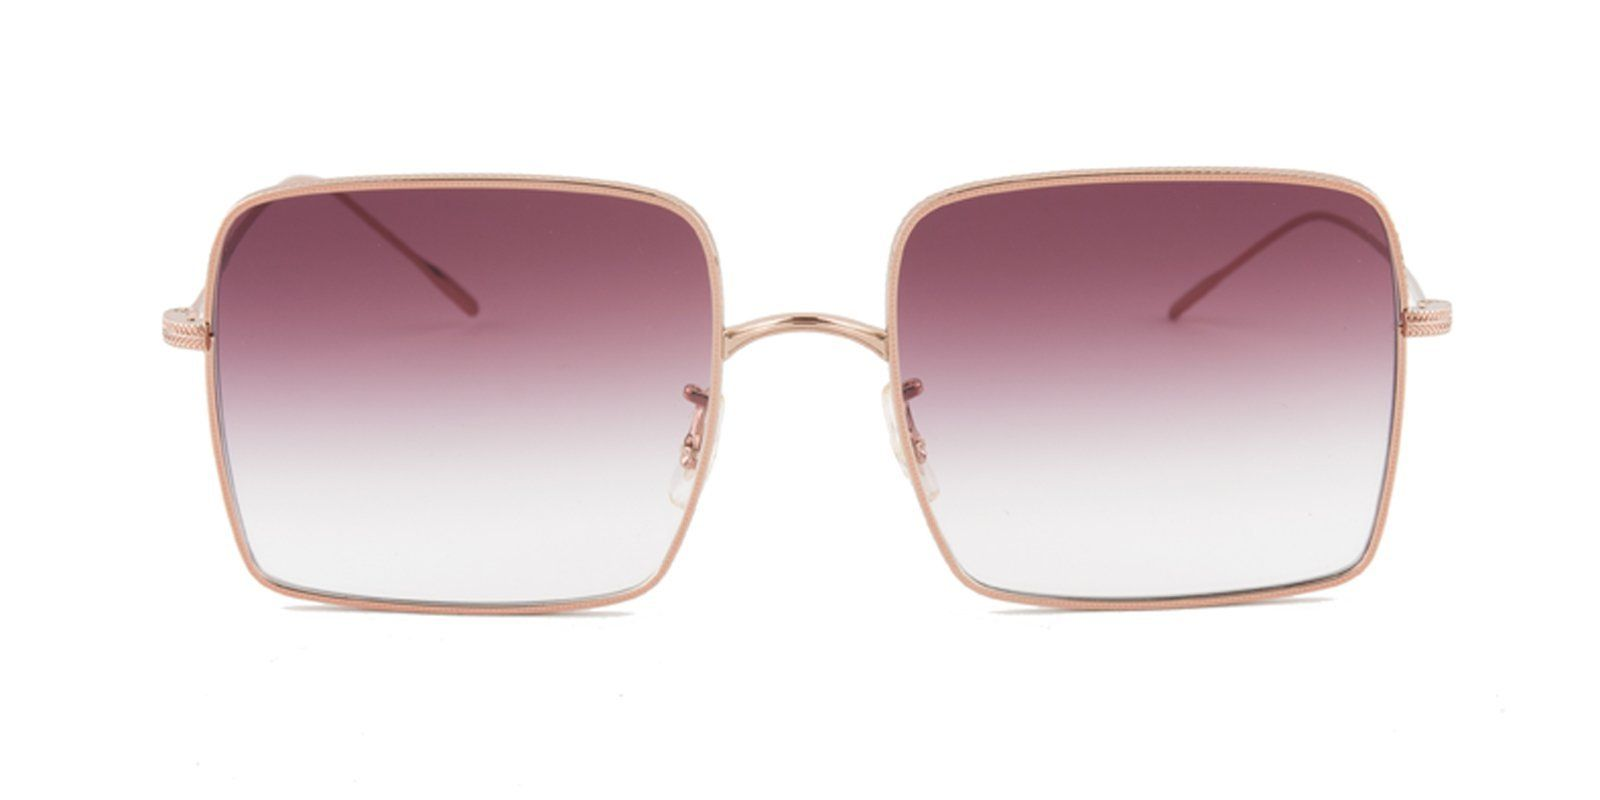 256111a7db4 Oliver Peoples - Rassine Gold - Purple sunglasses in 2019